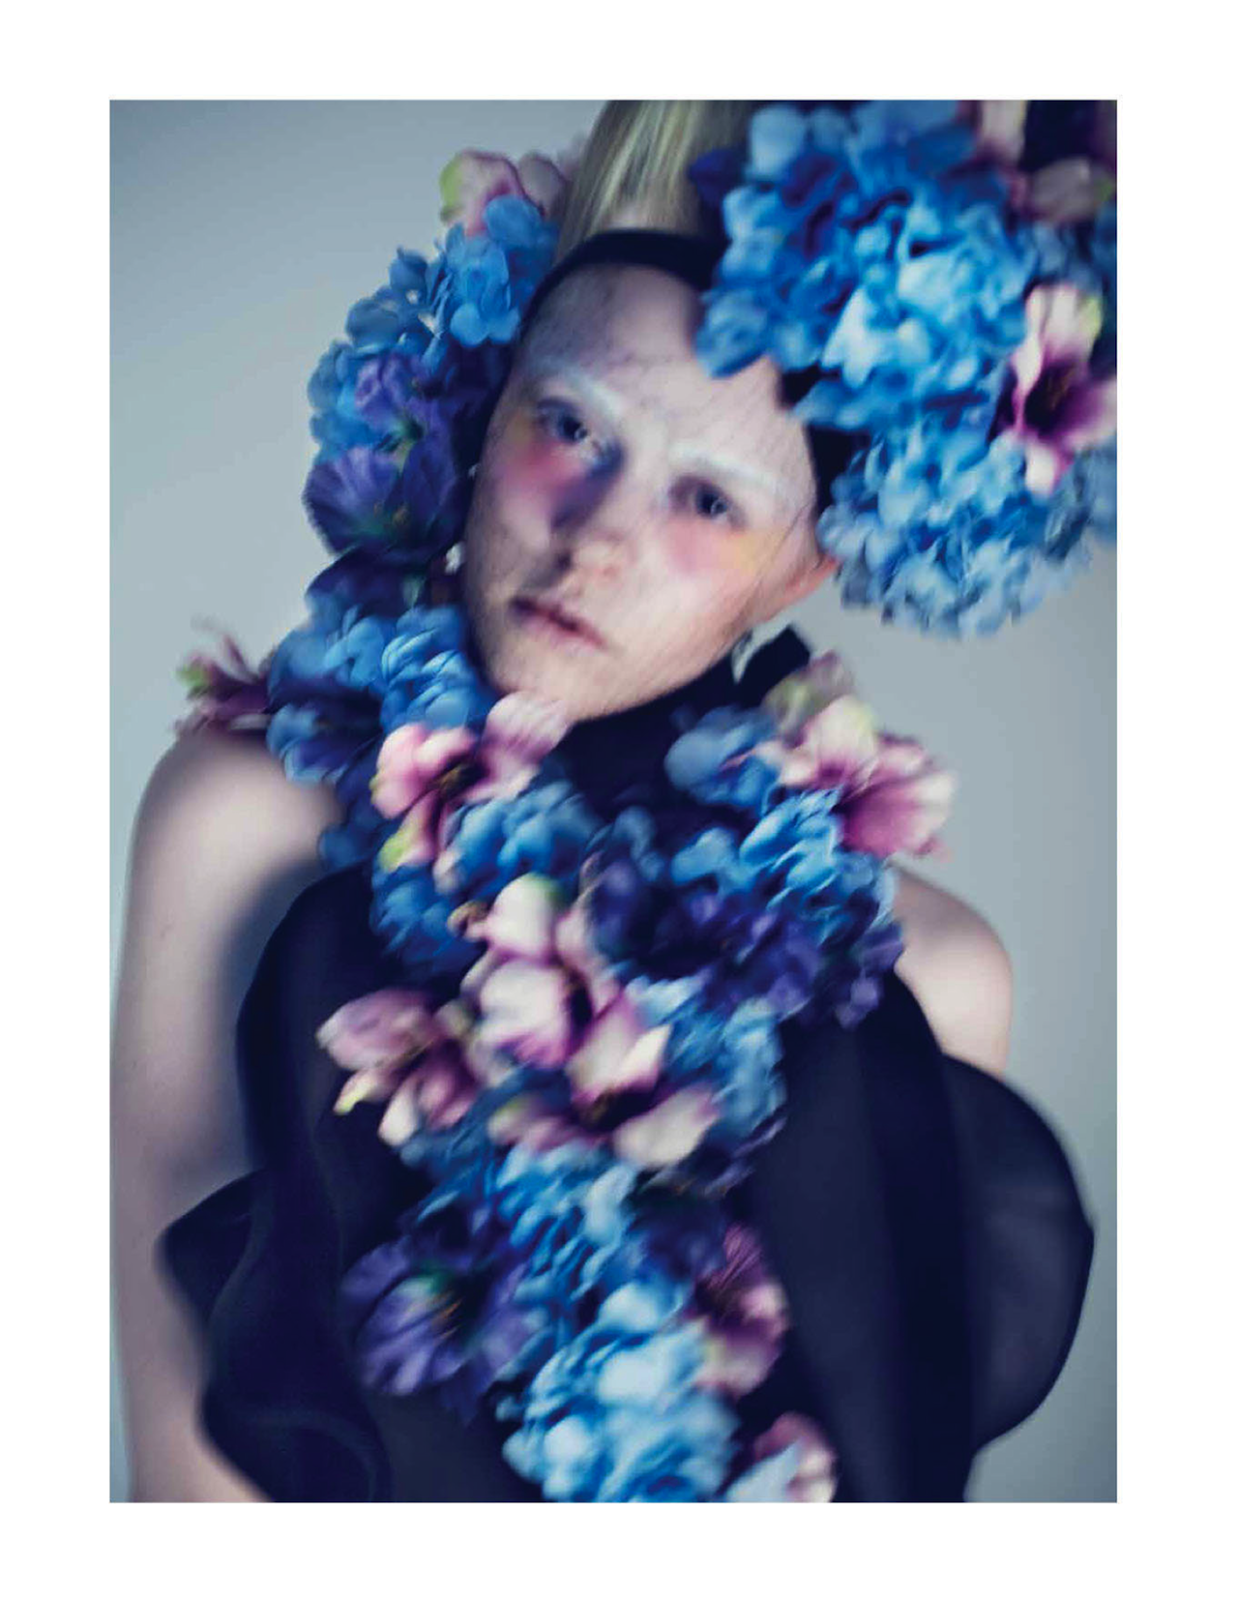 full blossom: pille t by lamb for harper's bazaar hong kong march 2013 | visual optimism; fashion editorials, shows, campaigns & more!